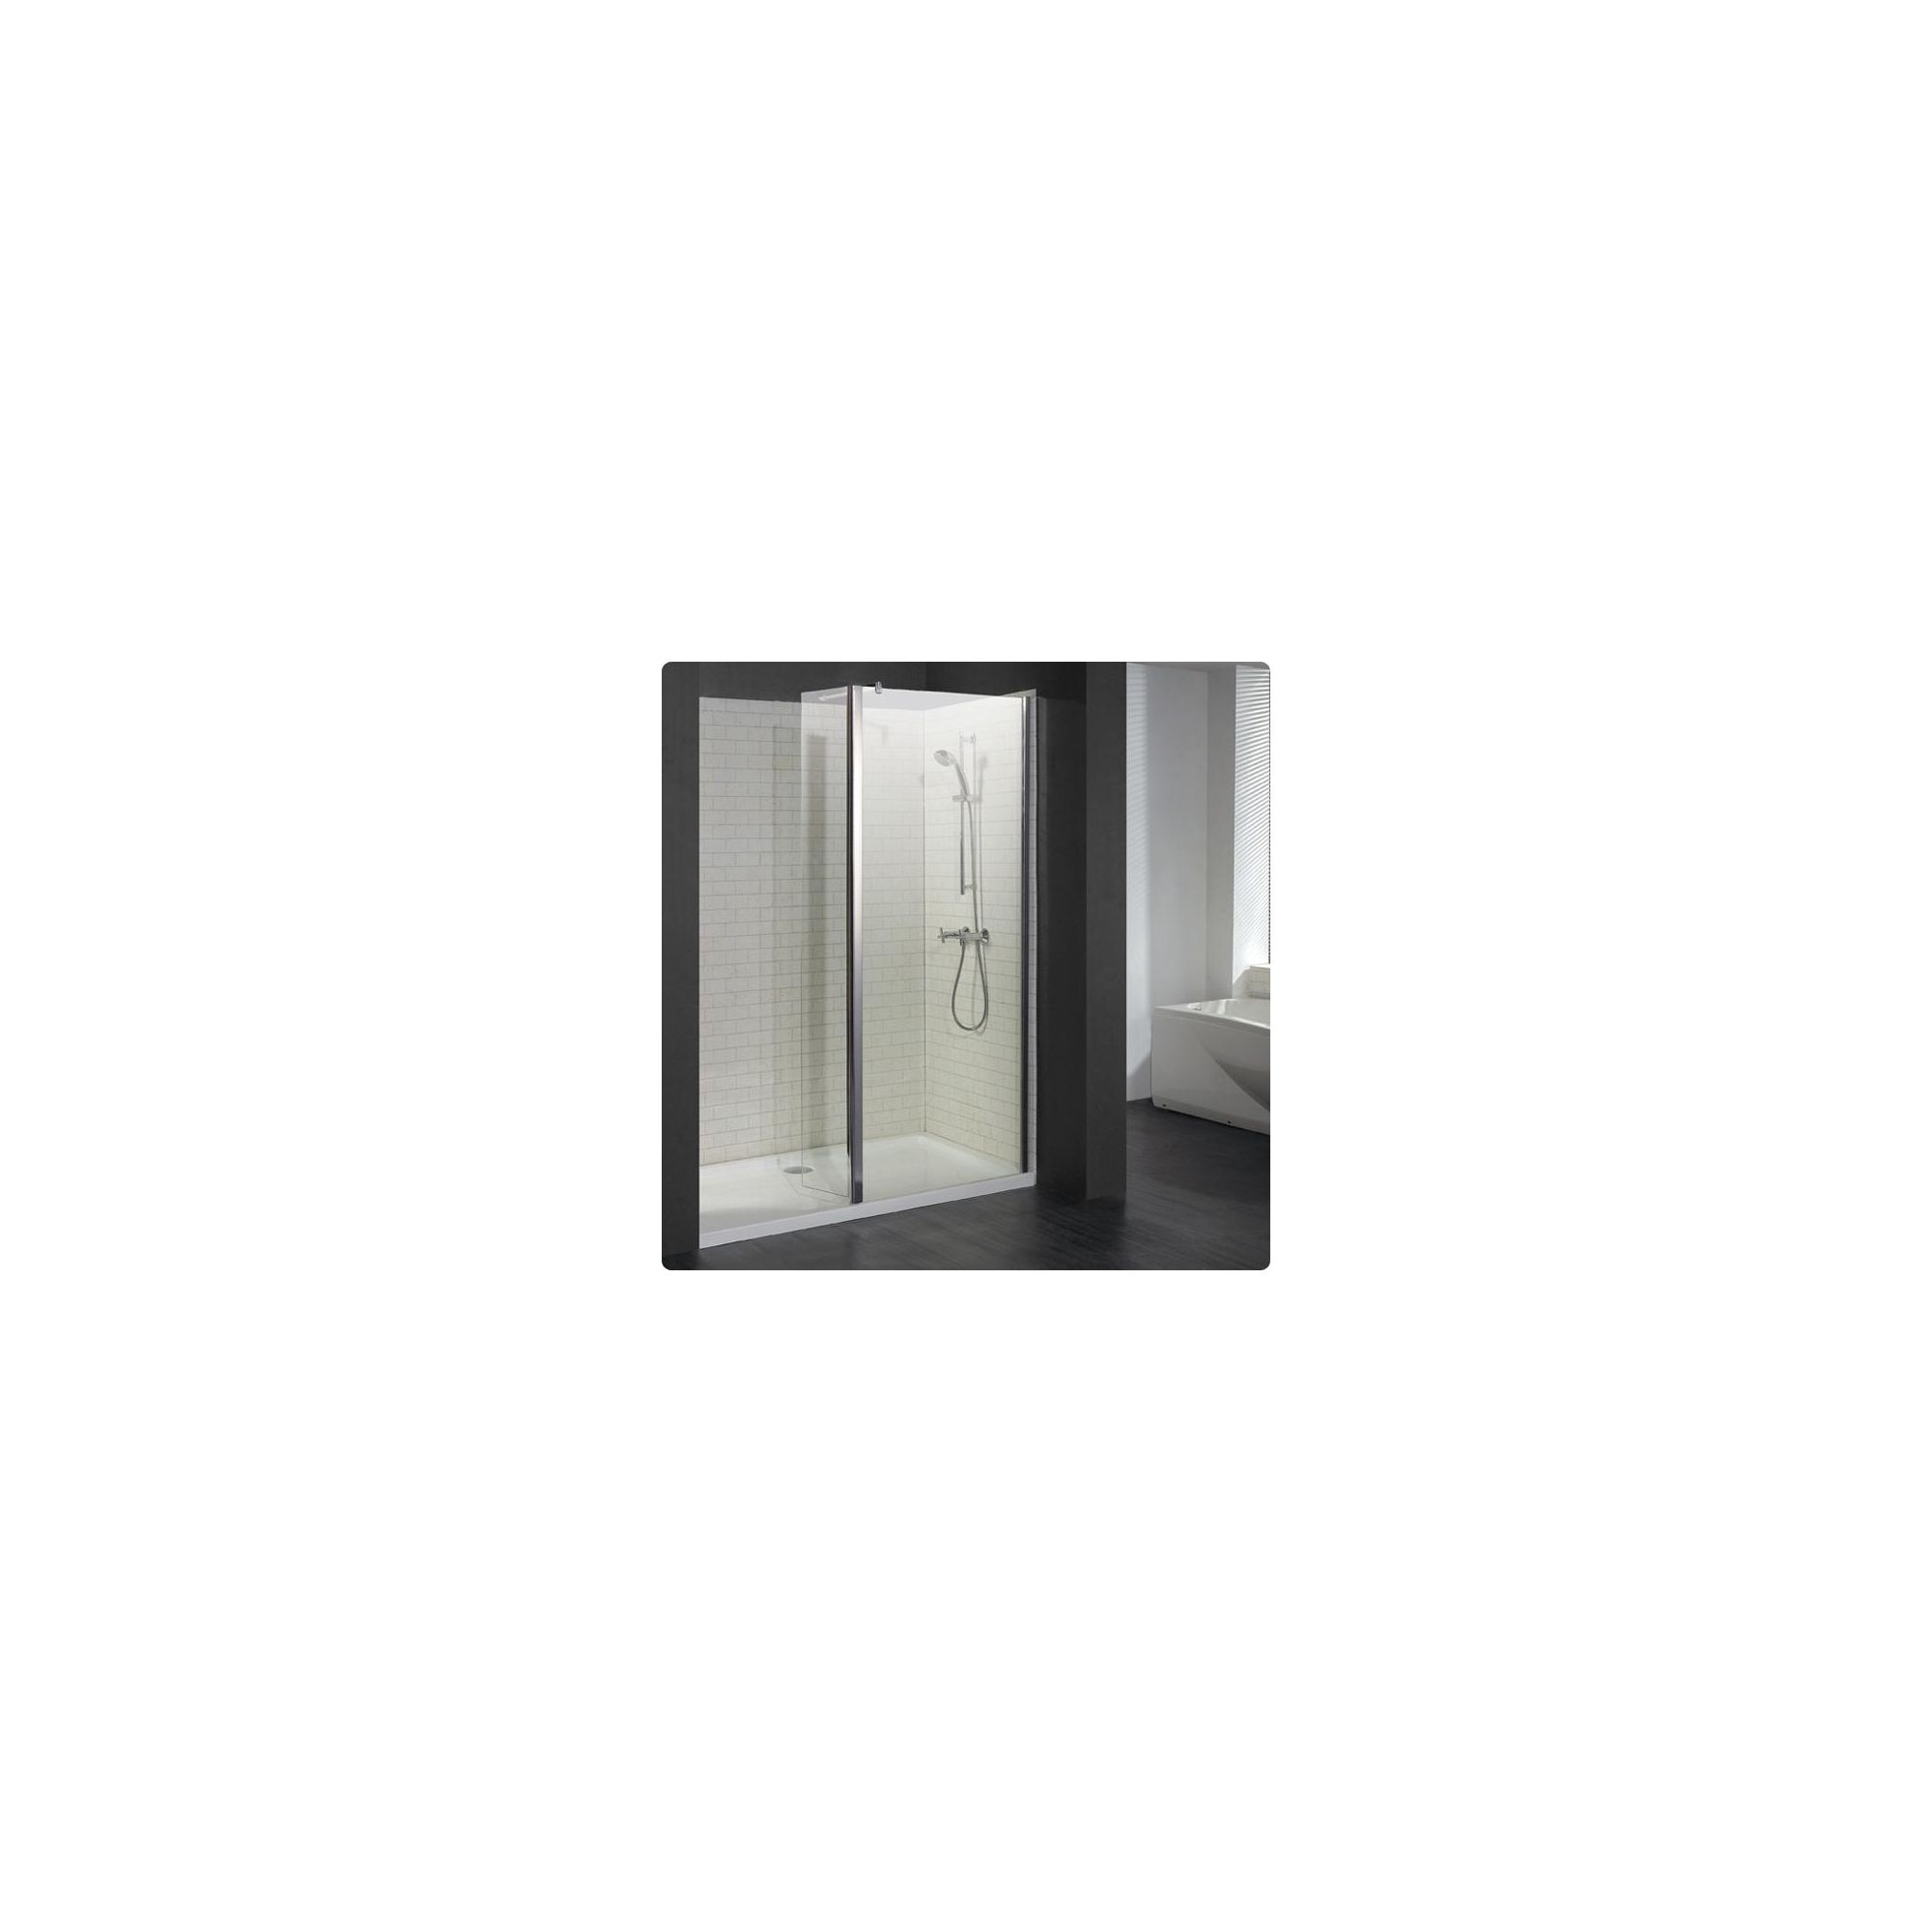 Duchy Choice Silver Walk-In Shower Enclosure 1500mm x 760mm (Complete with Tray), 6mm Glass at Tesco Direct